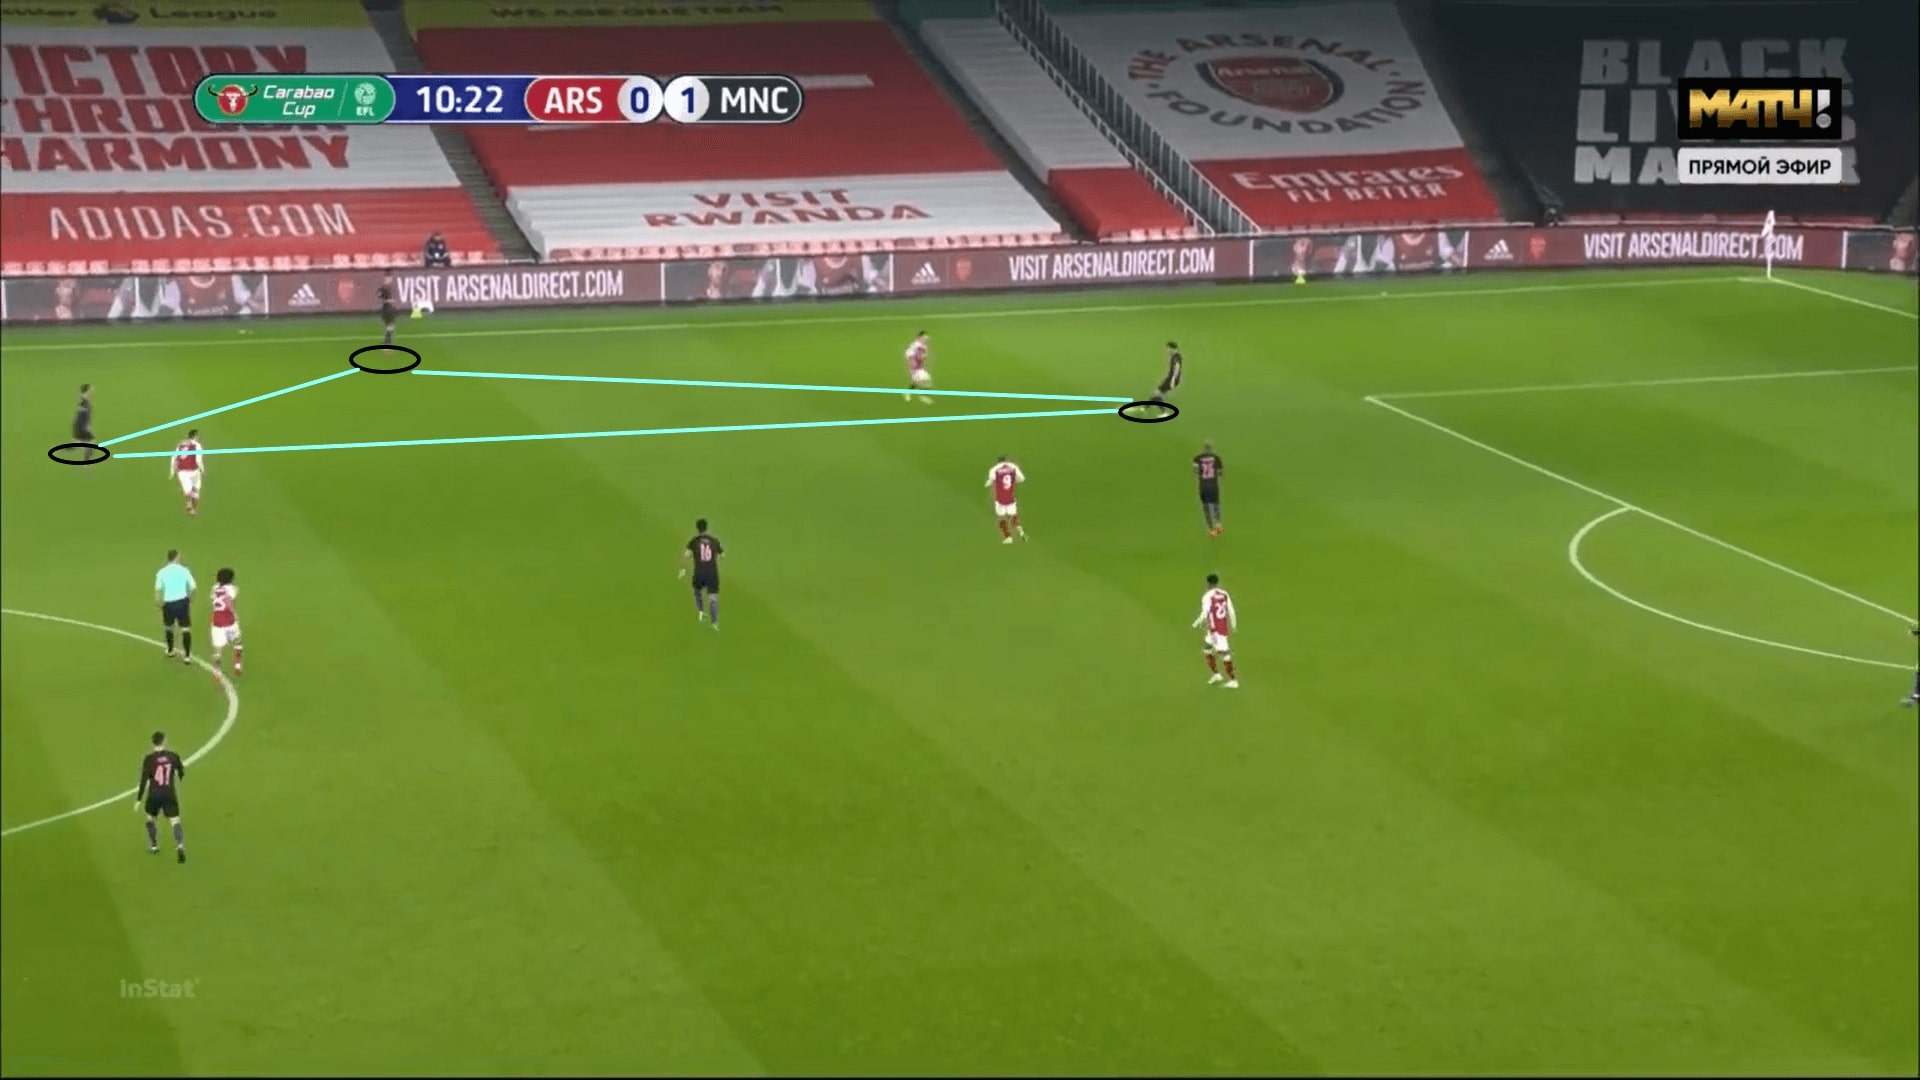 EFL Cup 2020/21: Arsenal vs Manchester City - tactical analysis - tactics